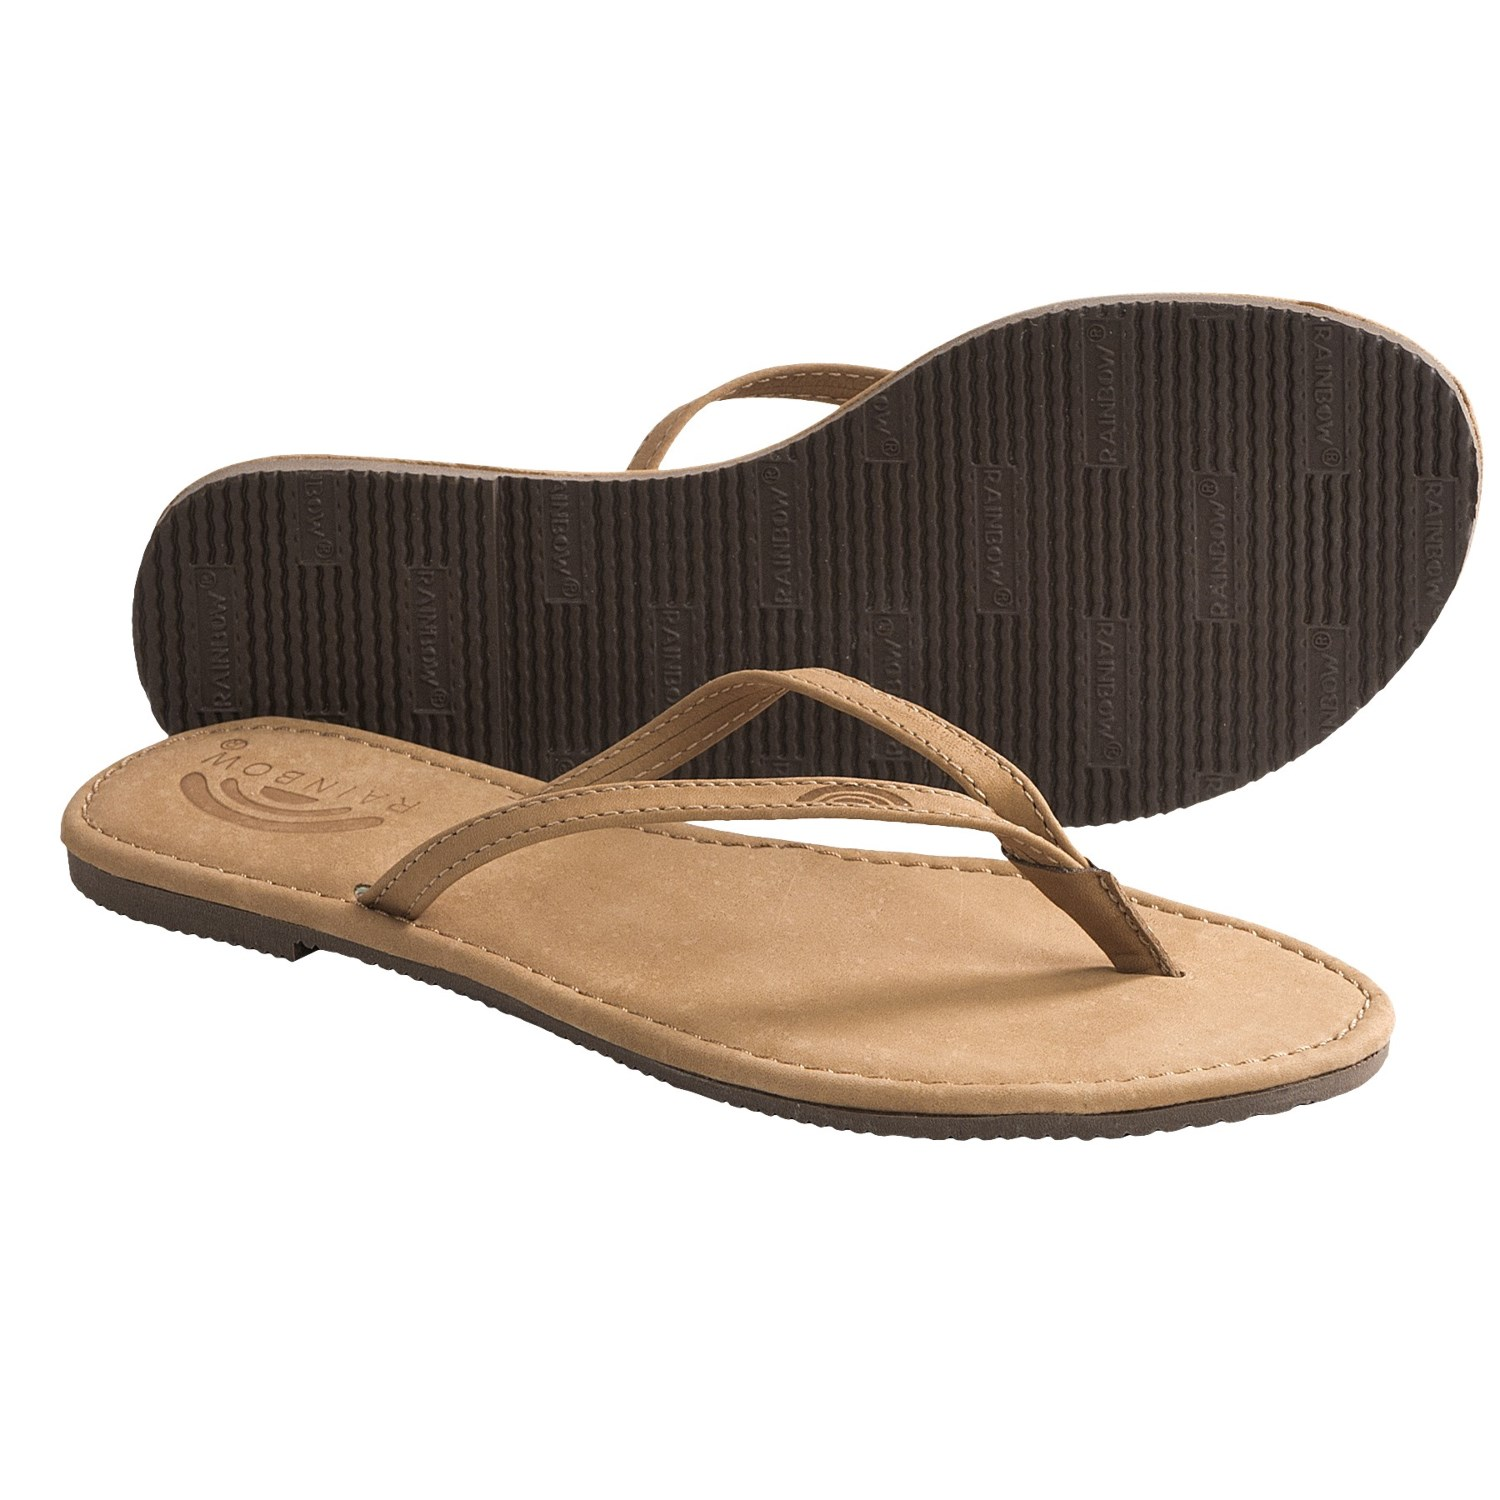 Rainbow Sandals The Tango Sandals (For Women) 6384H - Save 33% Rainbow Sandals